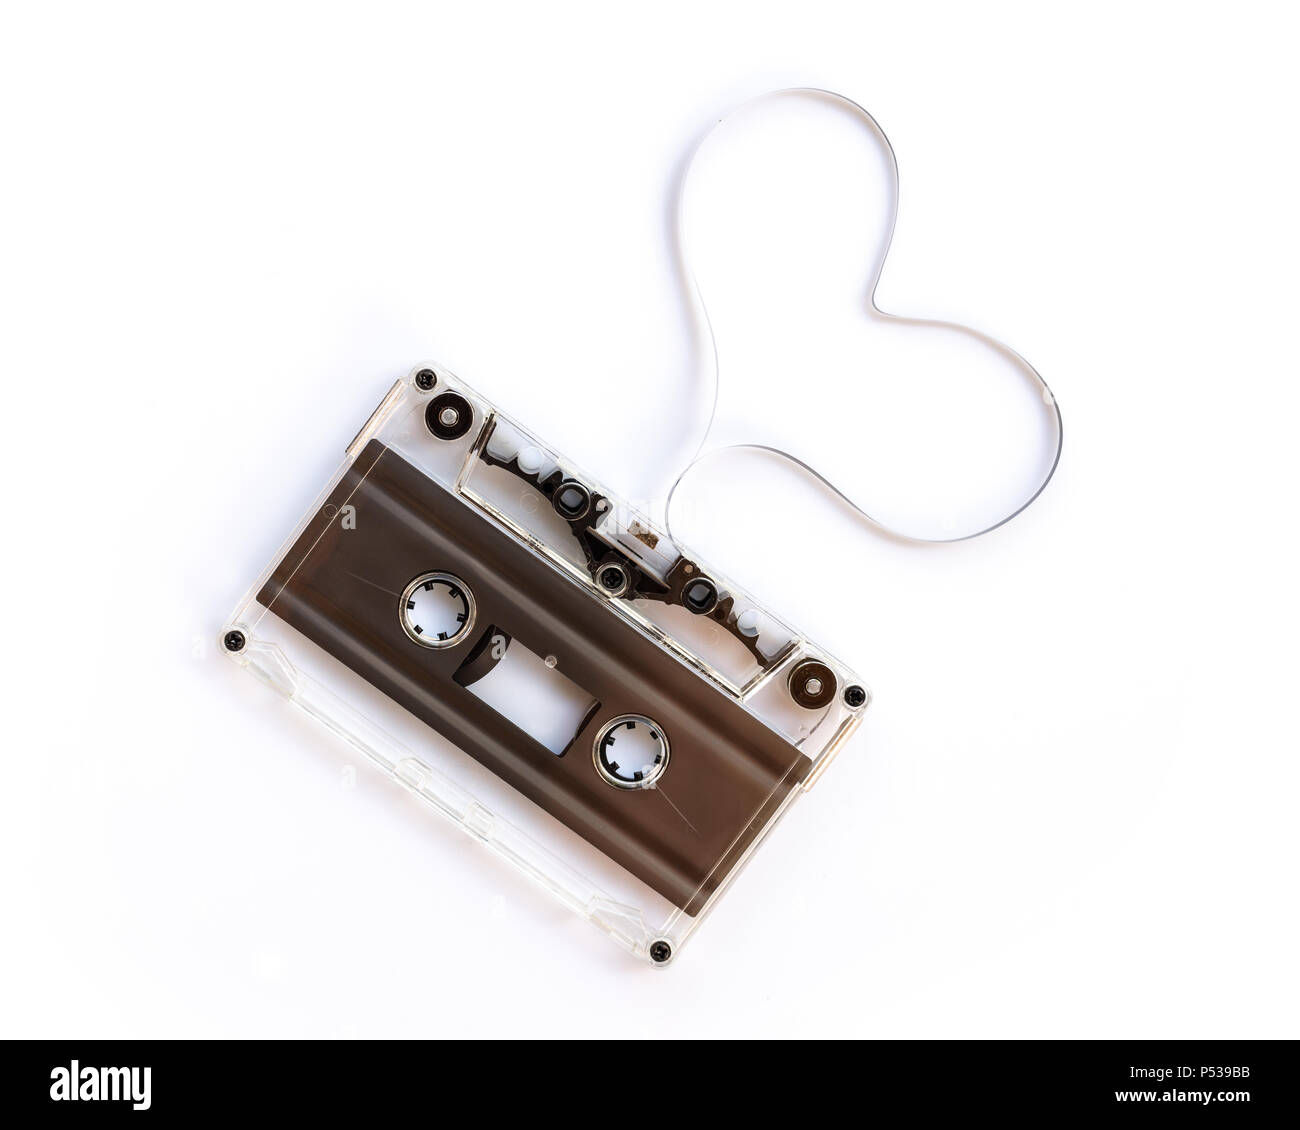 Translucent audio cassette with the magnetic tape in the shape of a heart  isolated on white background, music love concept - Stock Image